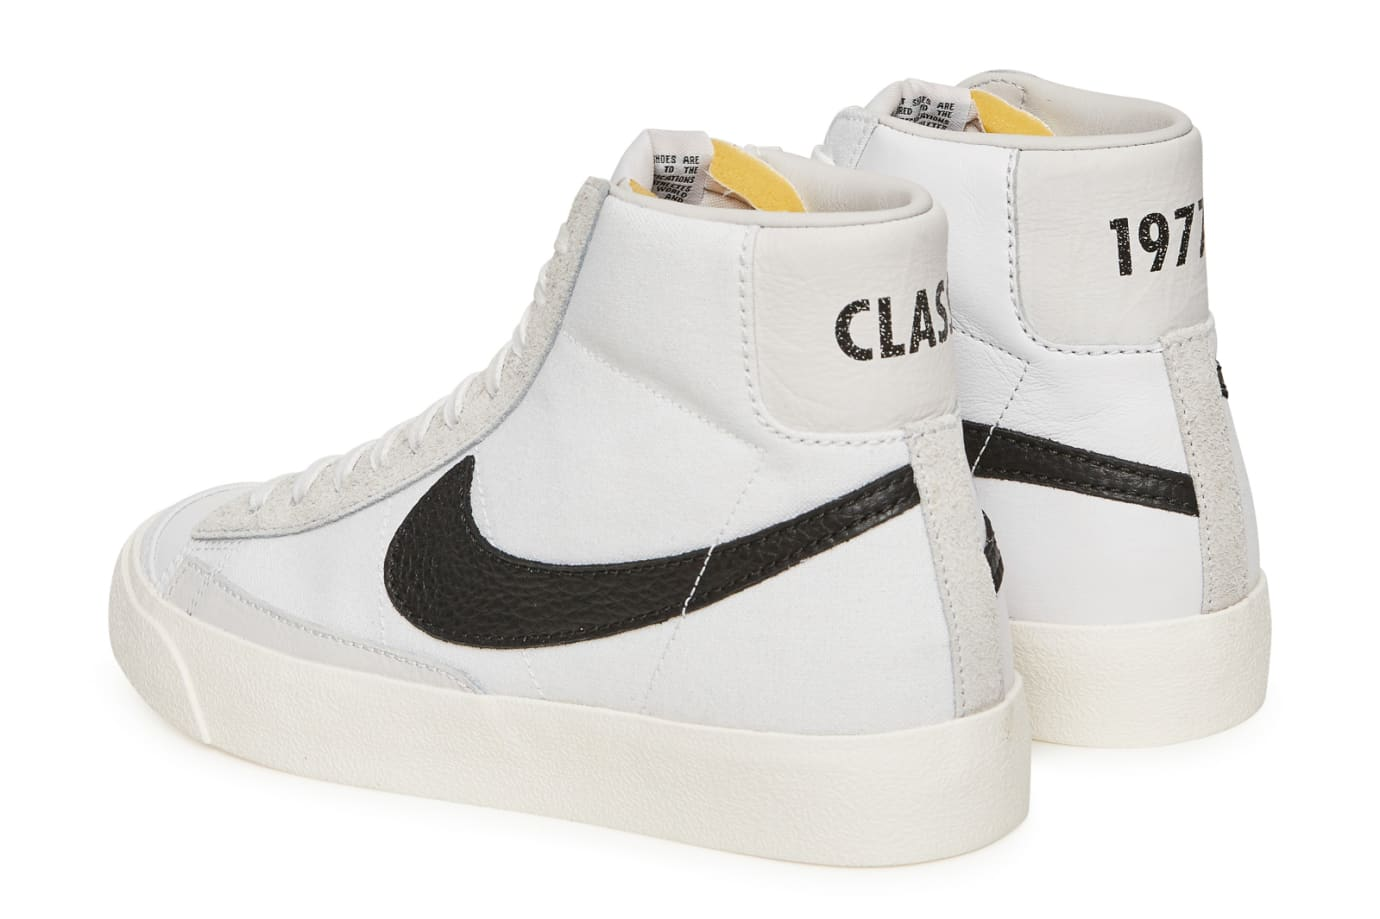 the best attitude e32a0 2fe97 Image via Slam Jam Slam Jam x Nike Blazer Mid Class 1977 (Pair 2)